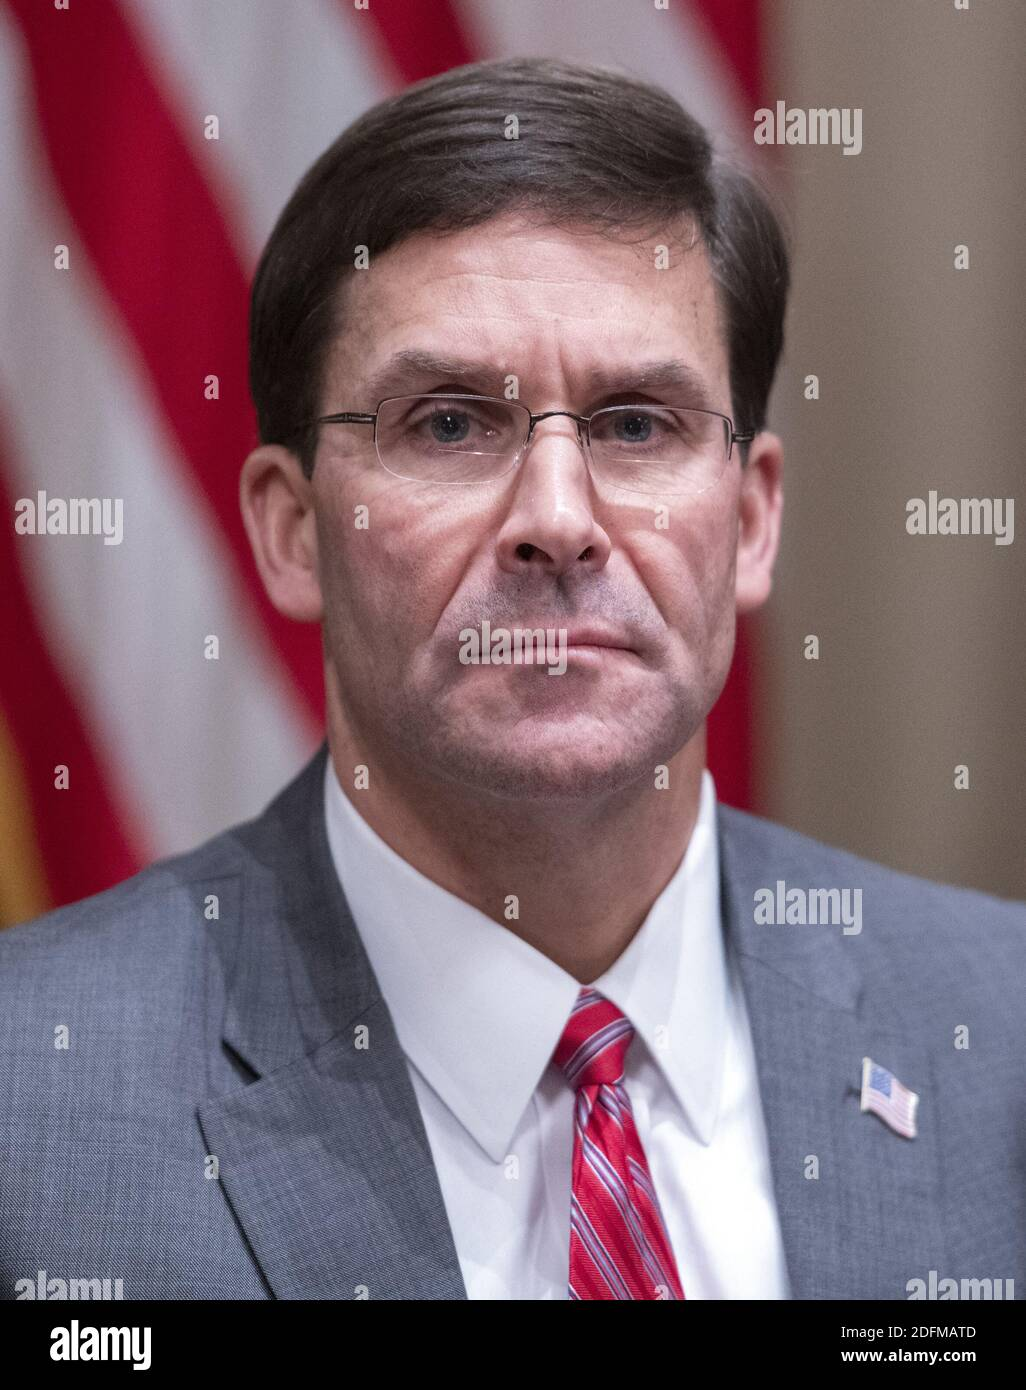 President Donal Trump Dismisses Defence Minister Mark Esper - File -United States Secretary of Defense Dr. Mark T. Esper participates in a briefing with US President Donald J. Trump and senior military leaders in the Cabinet Room of the White House in Washington, DC, USA on Monday, October 7, 2019. Photo by Ron Sachs/CNP/ABACAPRESS.COM Stock Photo